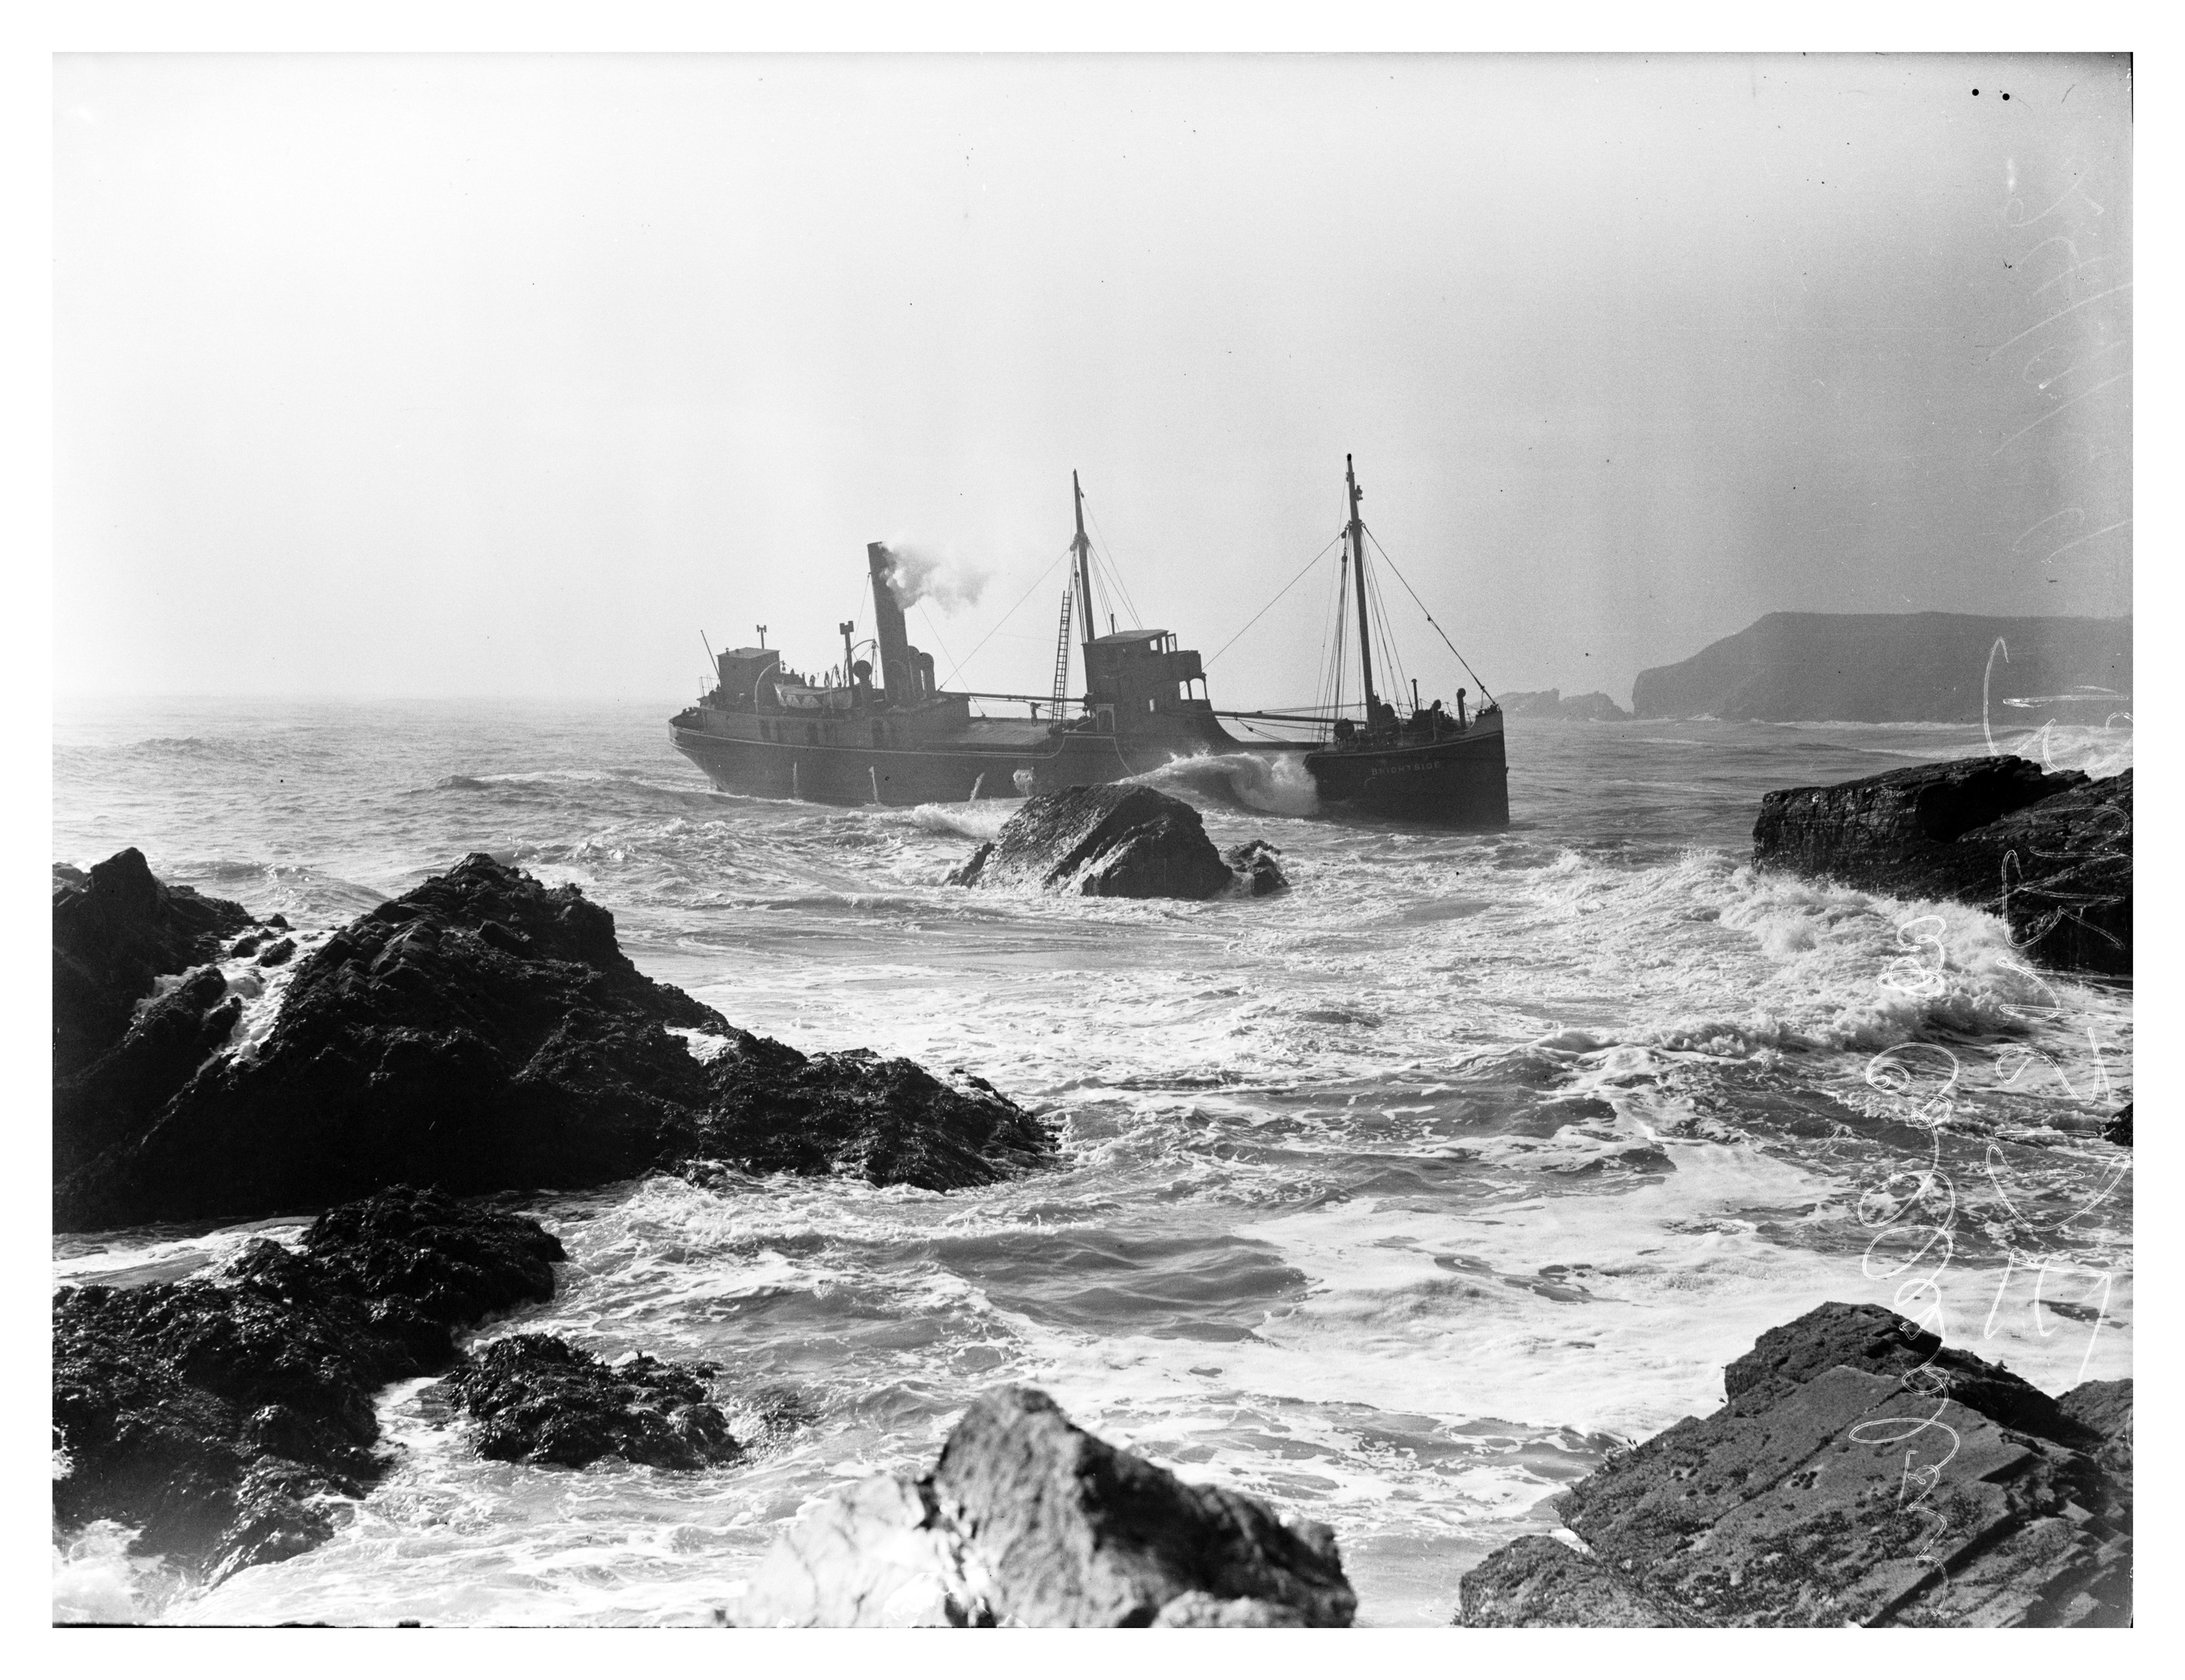 The wreck of the coaster, Brightside, pinned on the rocks at Collieston.